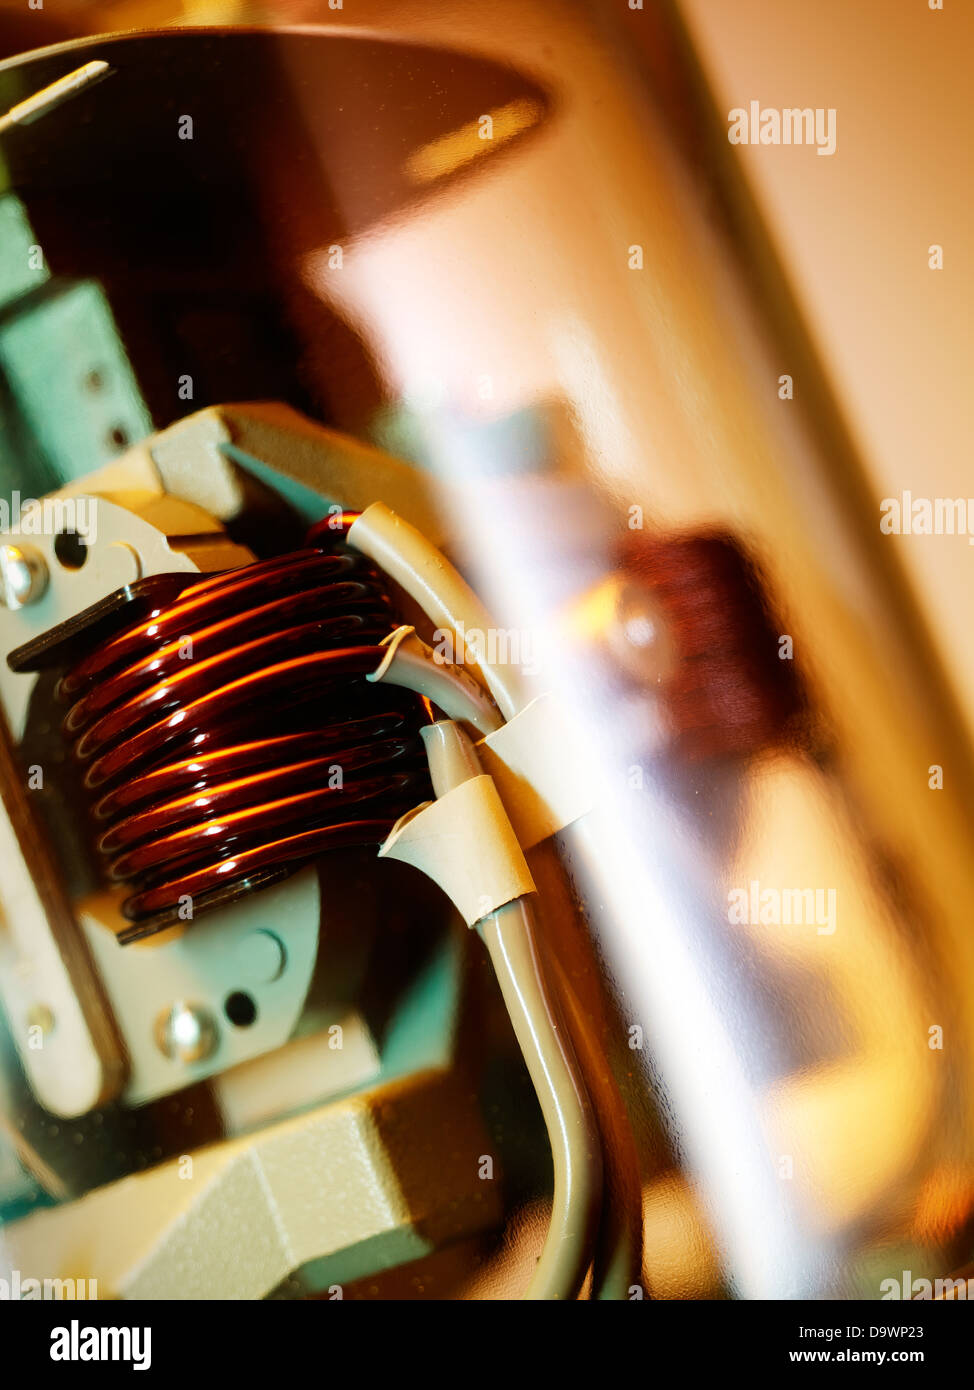 electric meter close up - Stock Image